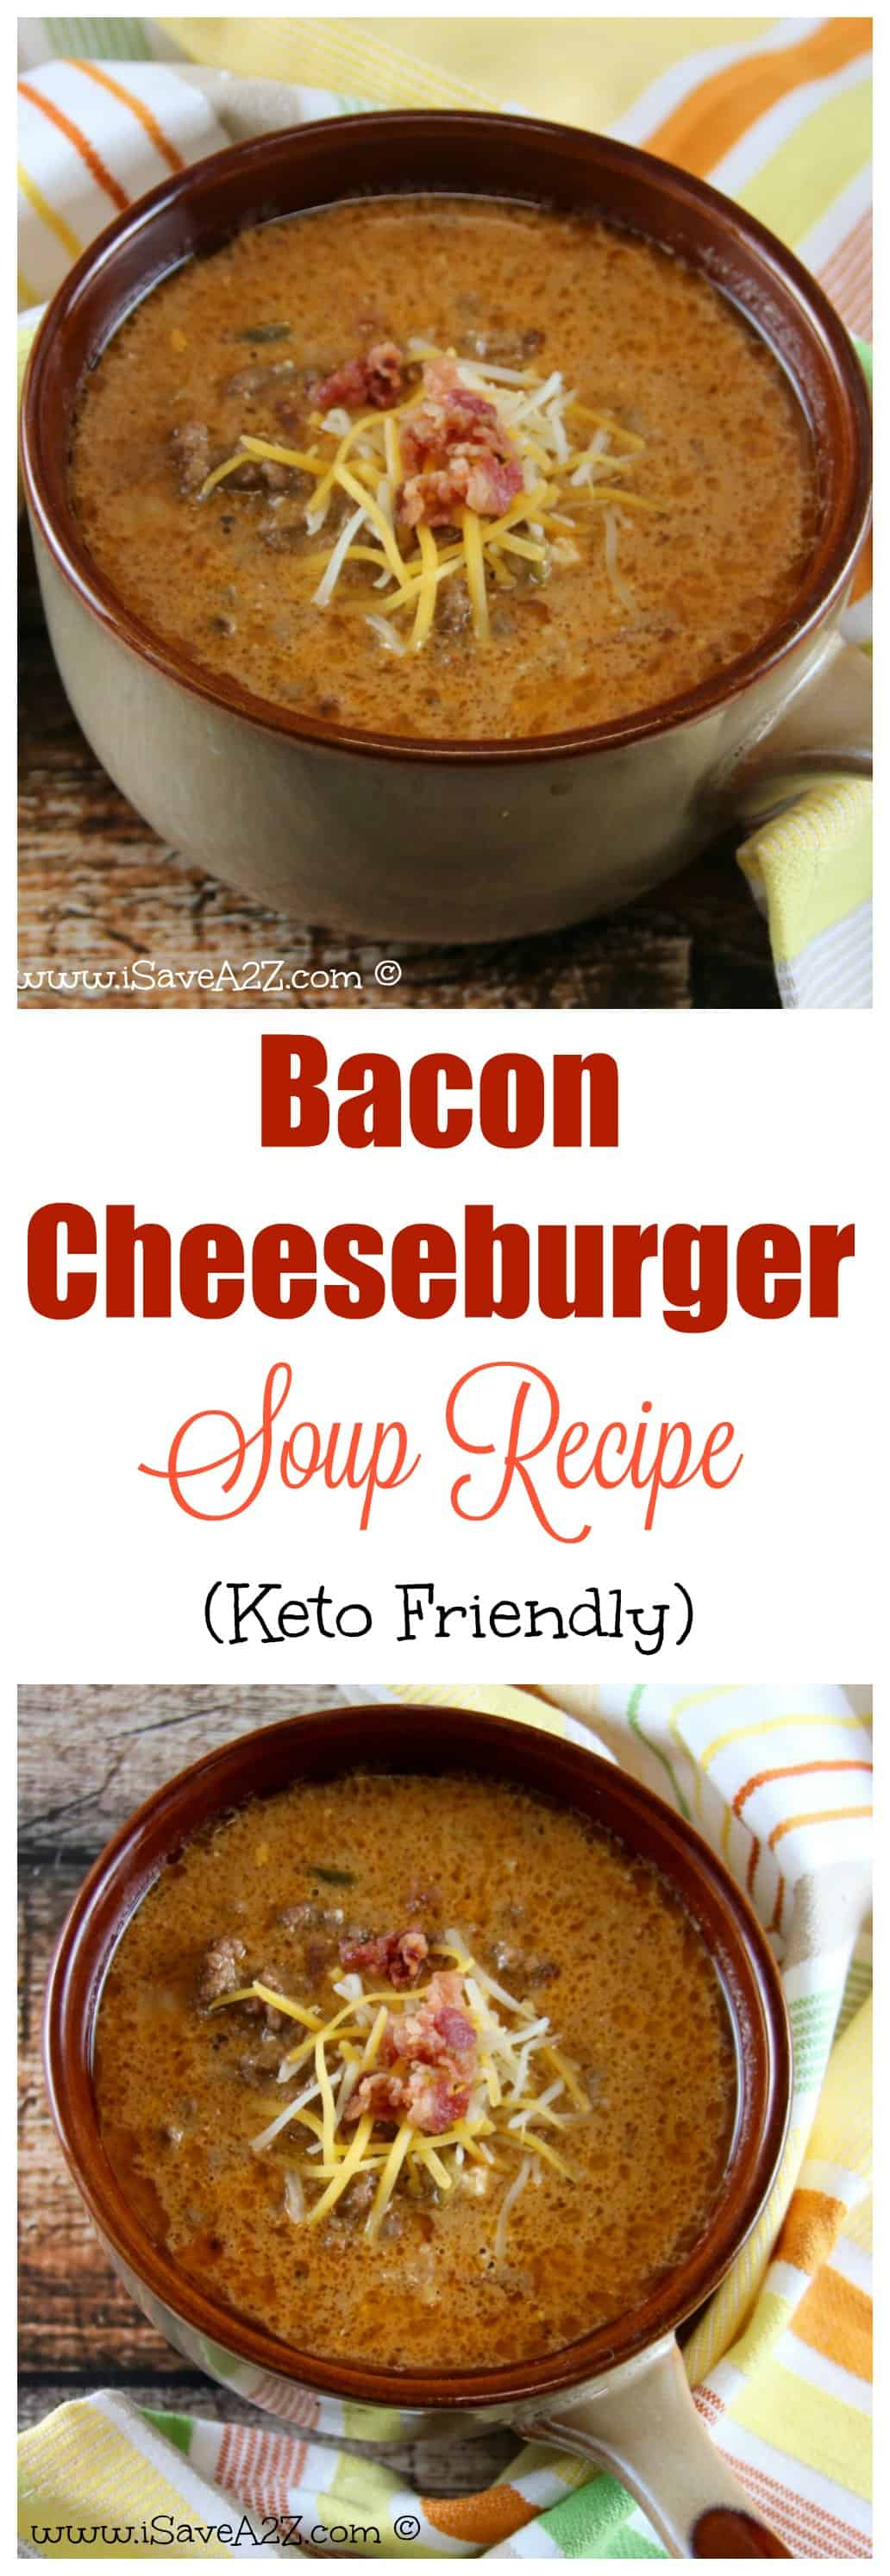 Bacon Cheeseburger Soup Keto Friendly Recipe